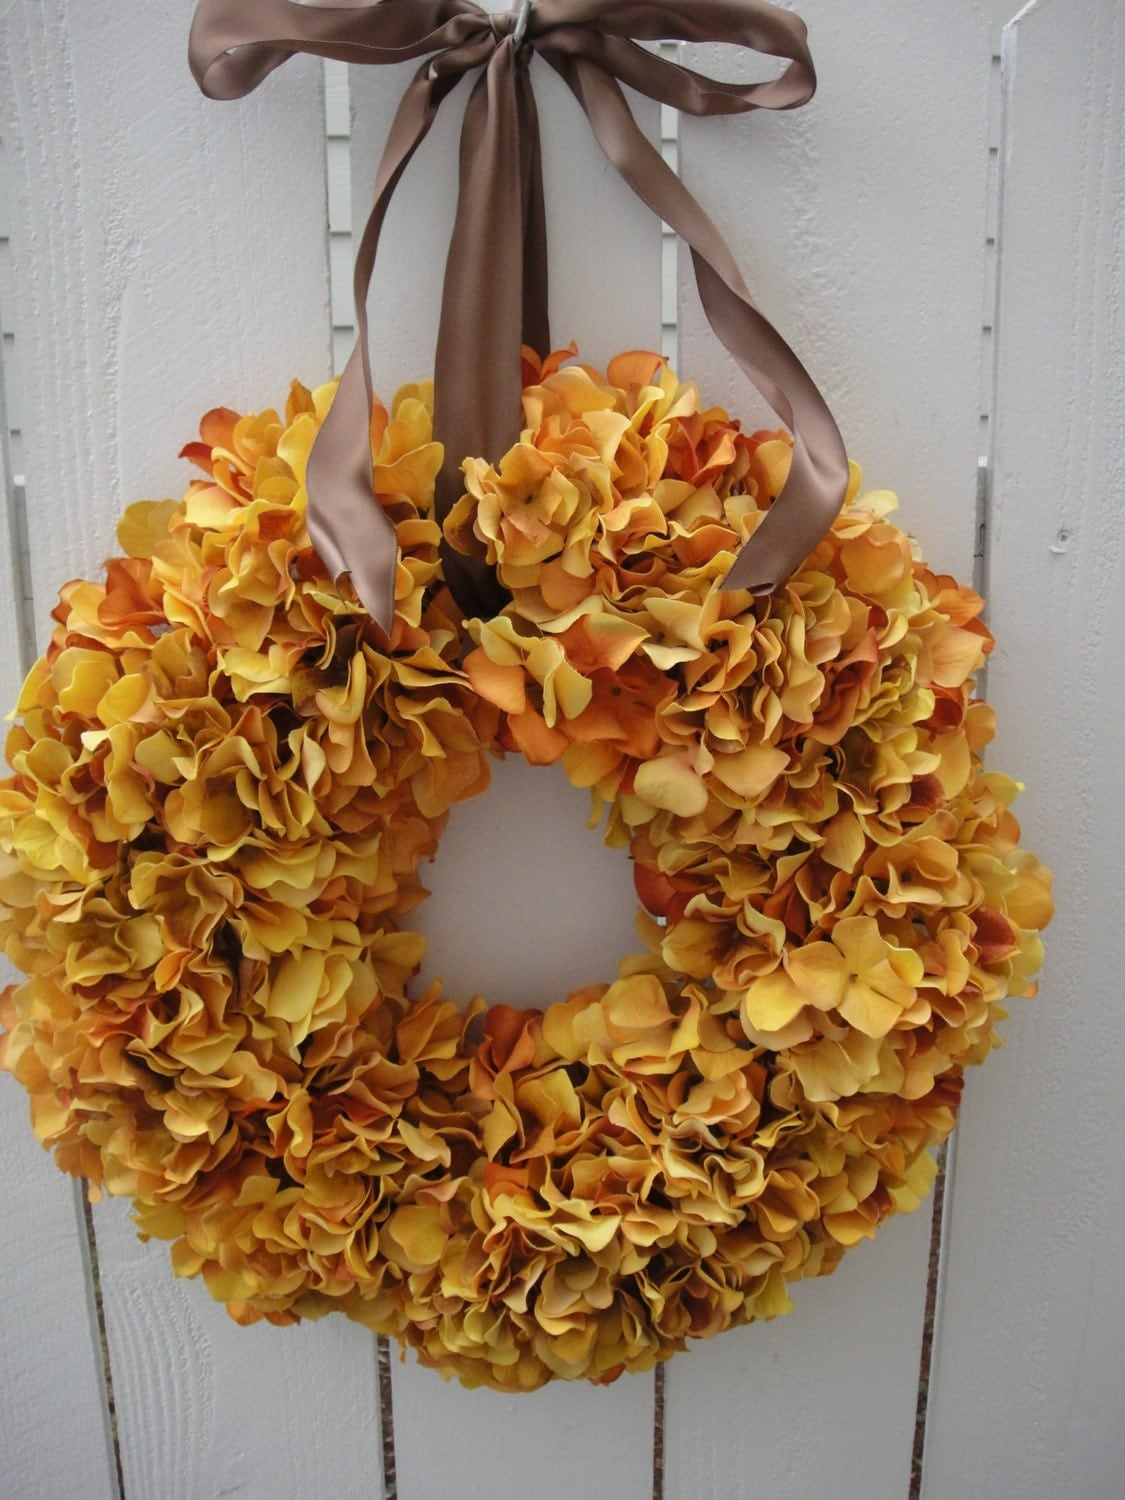 Hydrangea Wreath Fall Wreath Now On Sale Golden Hydrangea